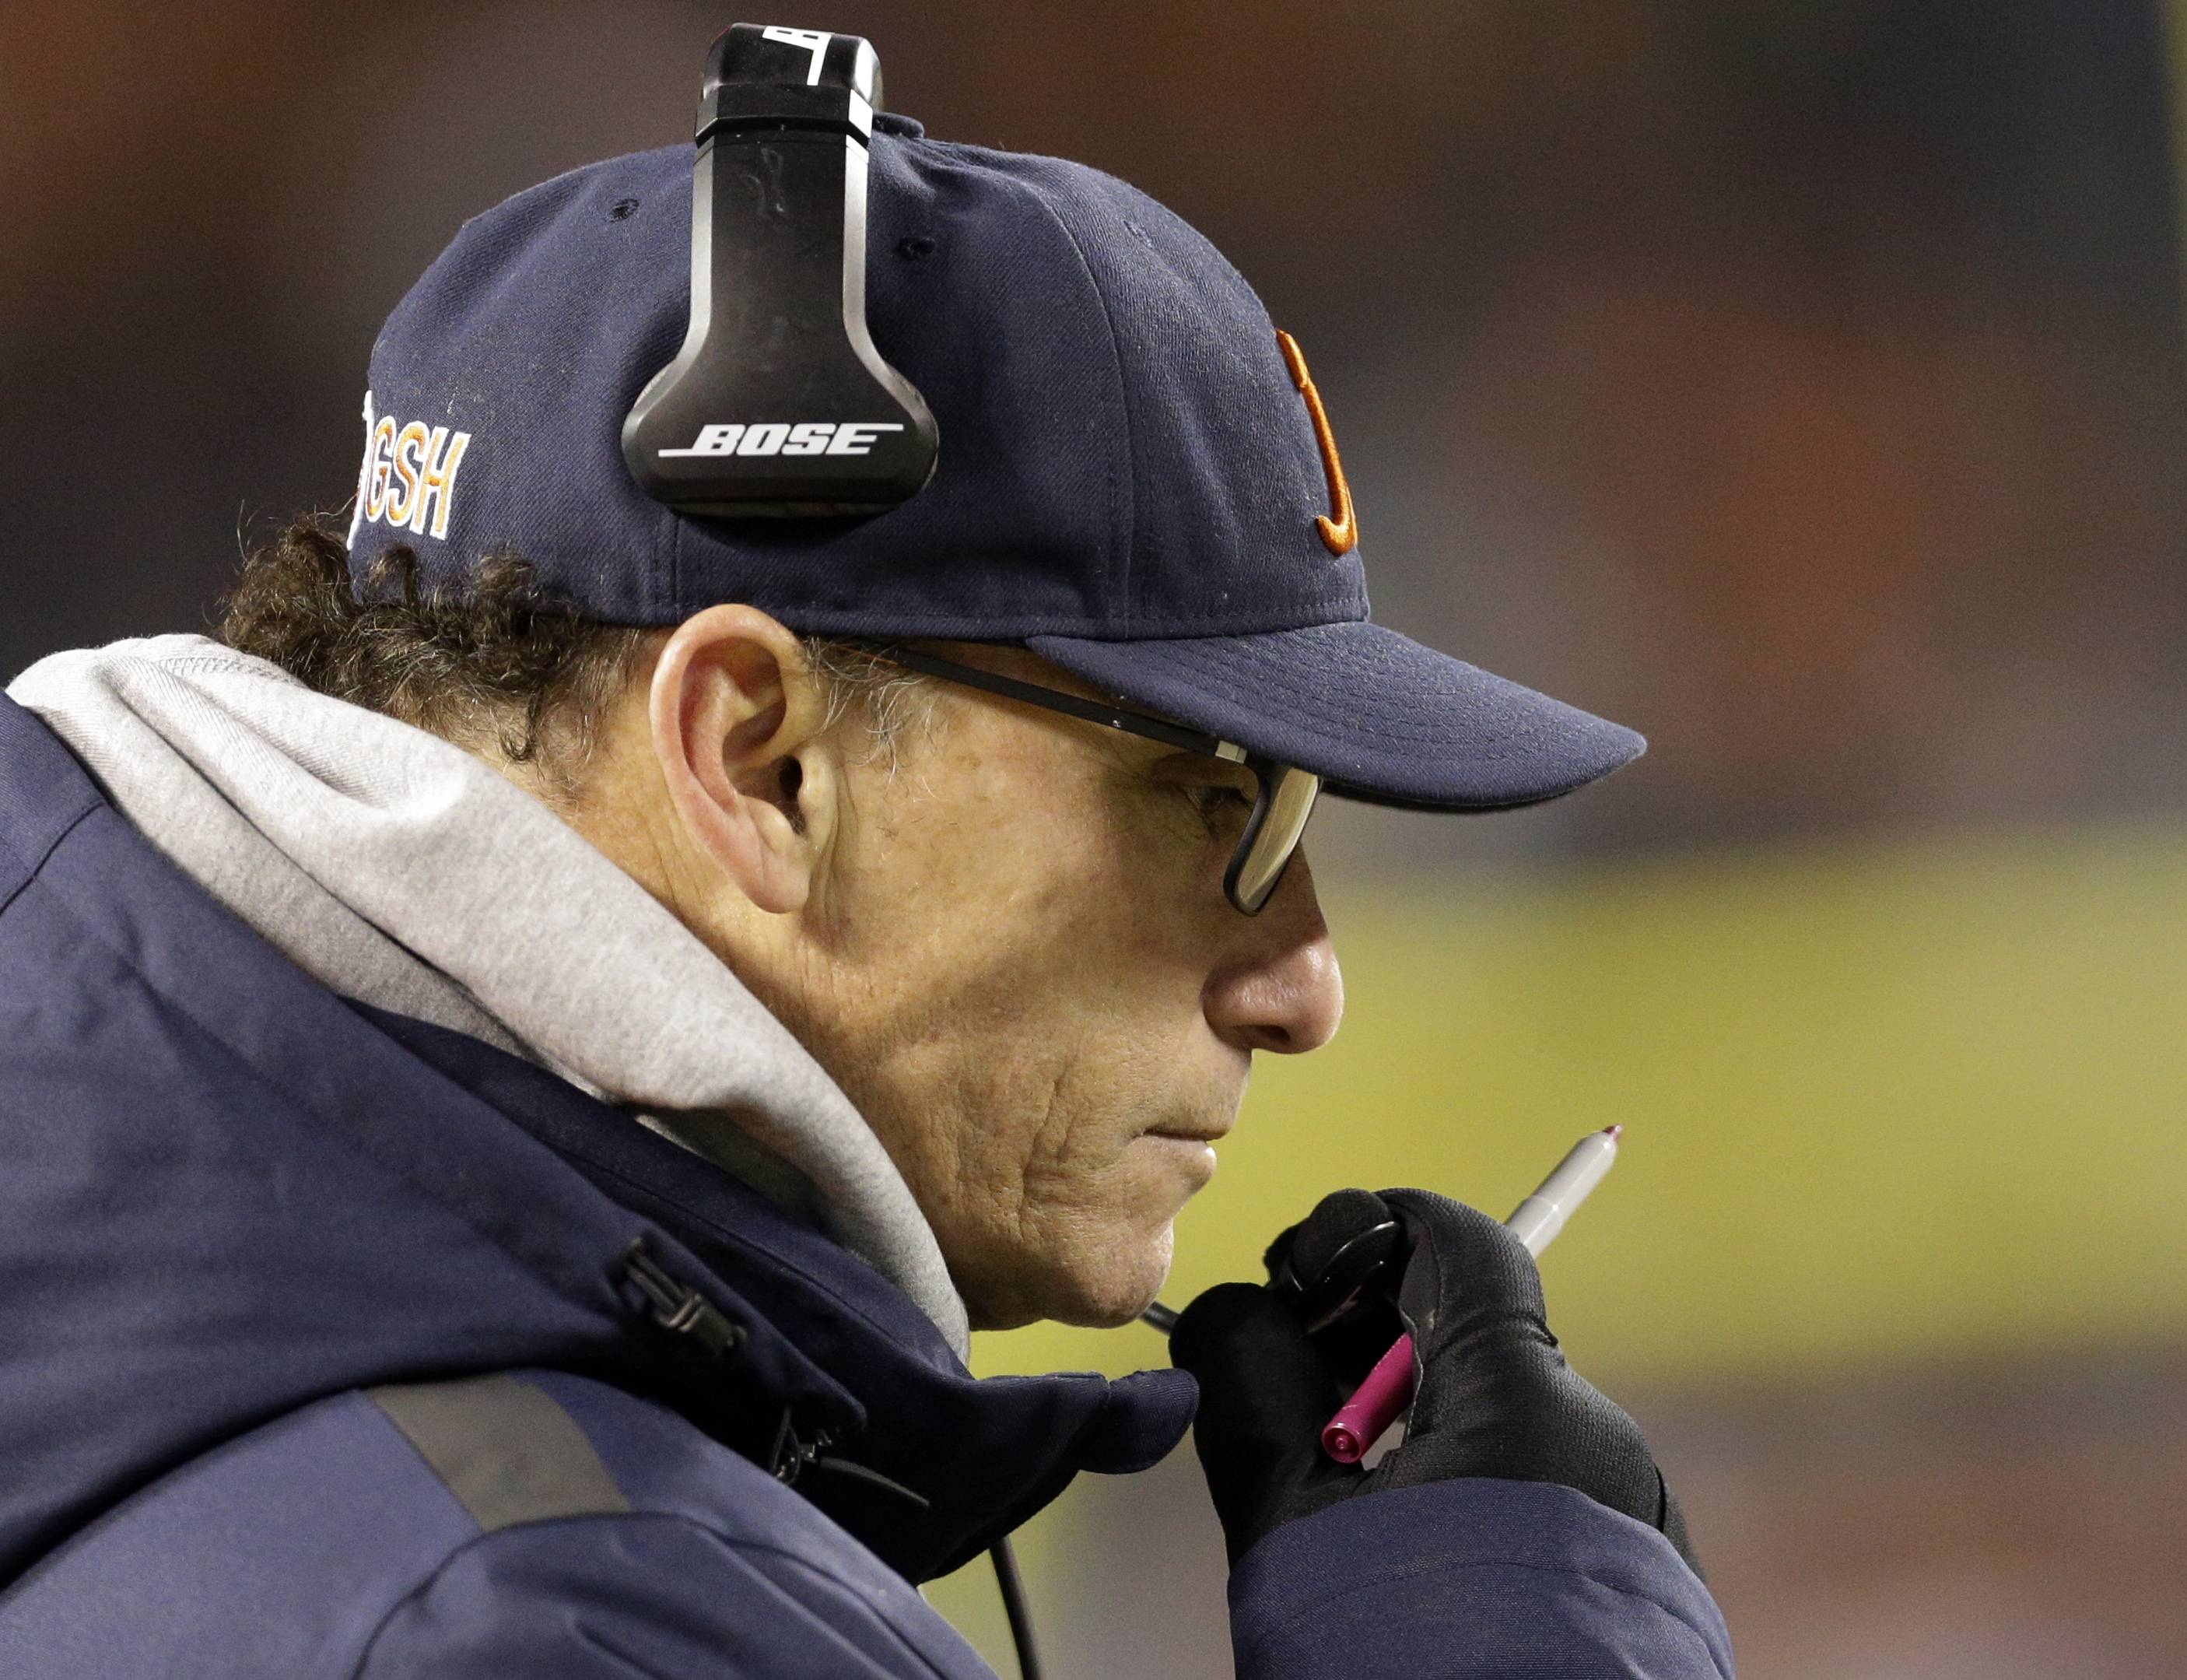 Even embattled Bears head coach Marc Trestman deserves a day of peace and goodwill on Christmas.